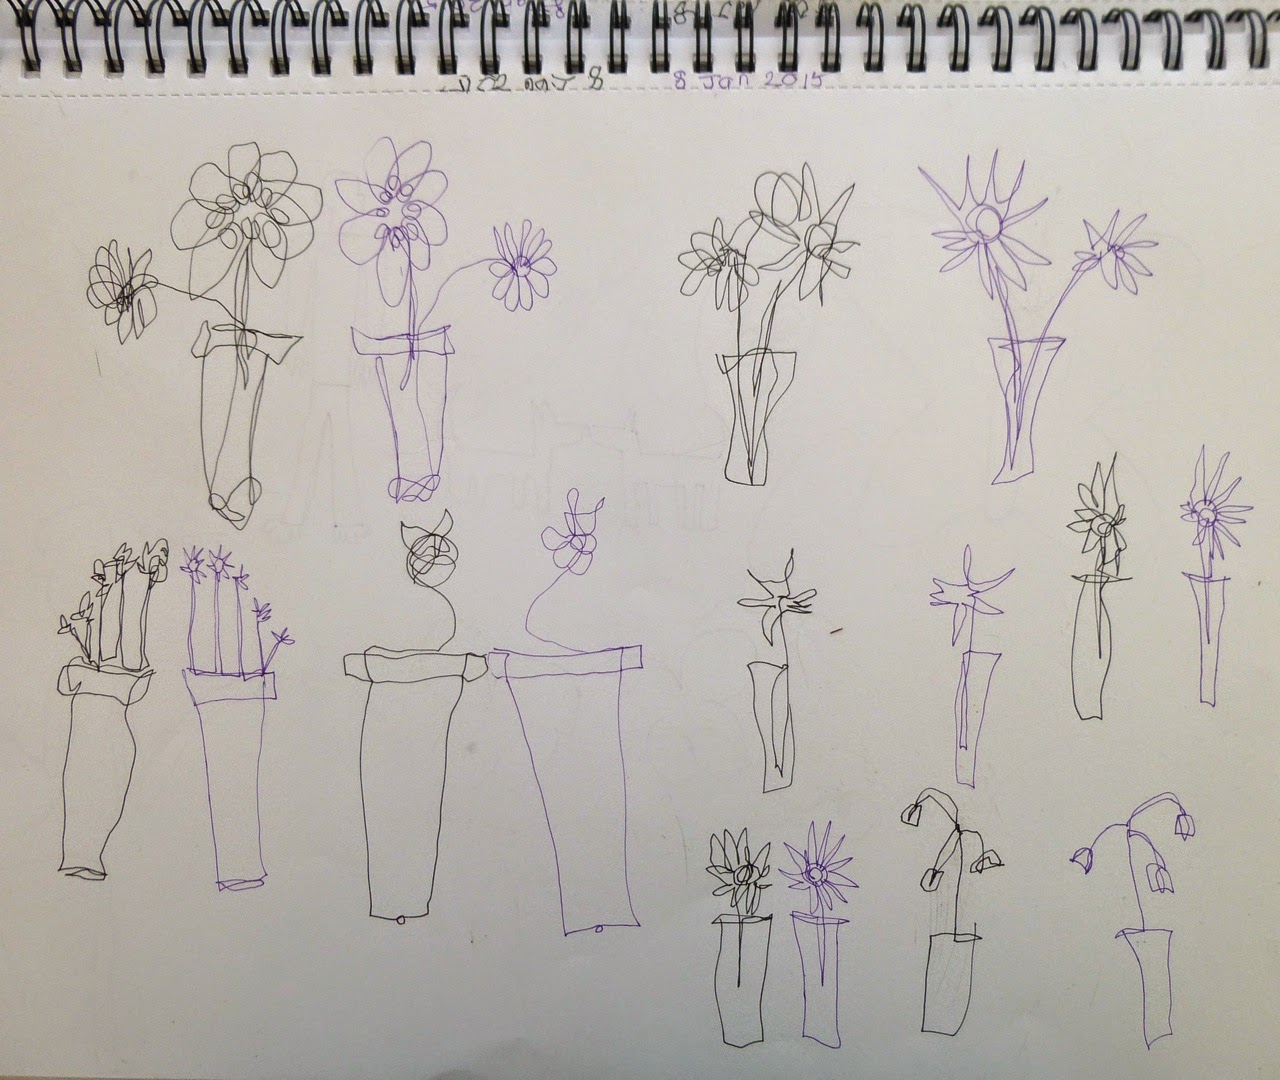 Vases of flowers drawn side-by-side simultaneously with left and right hand